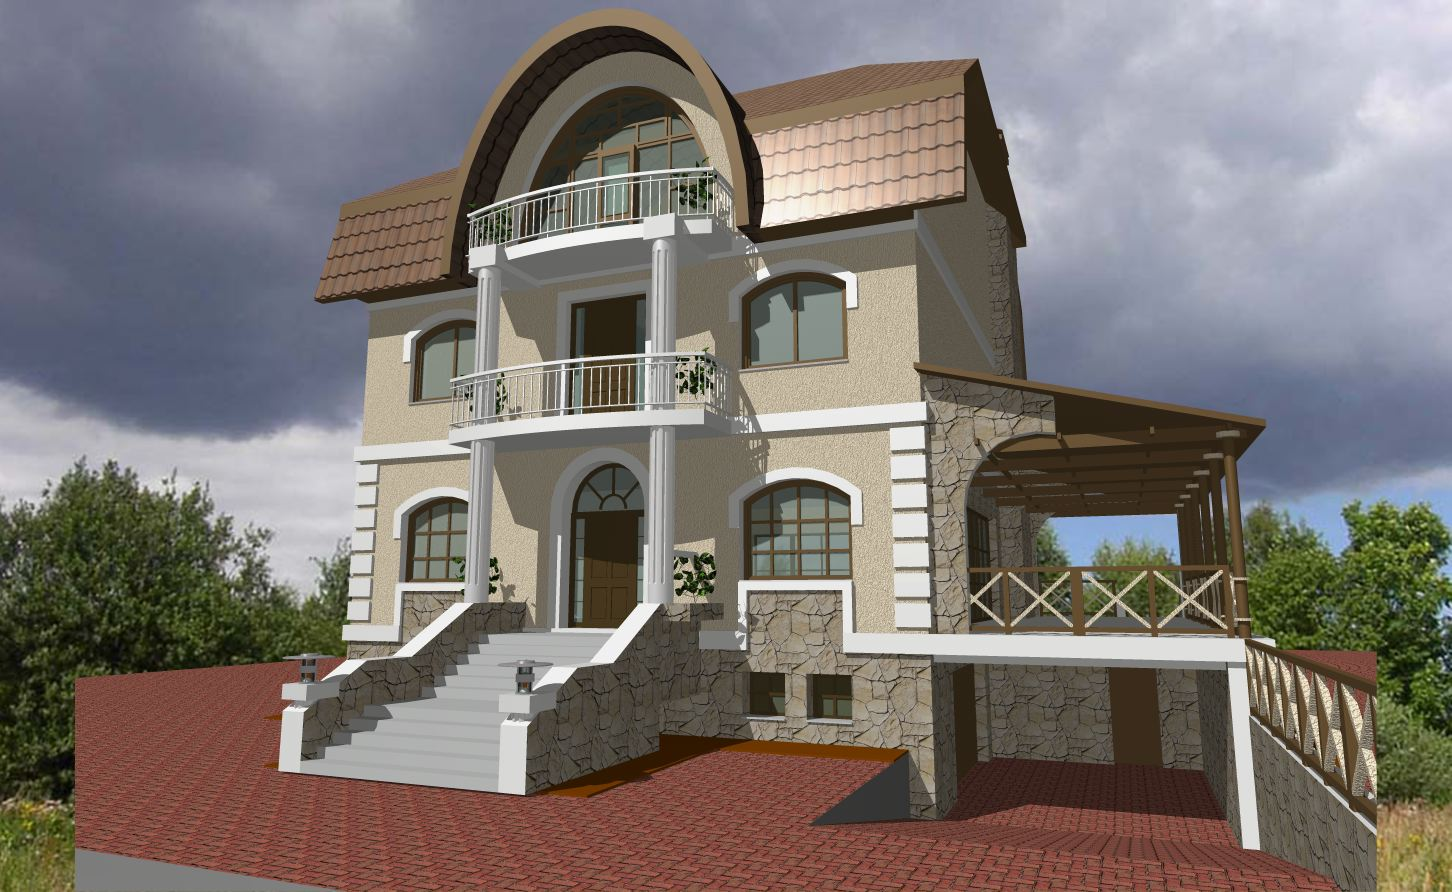 Foundation dezin decor exterior elevations view 39 s Exterior home design ideas 2015